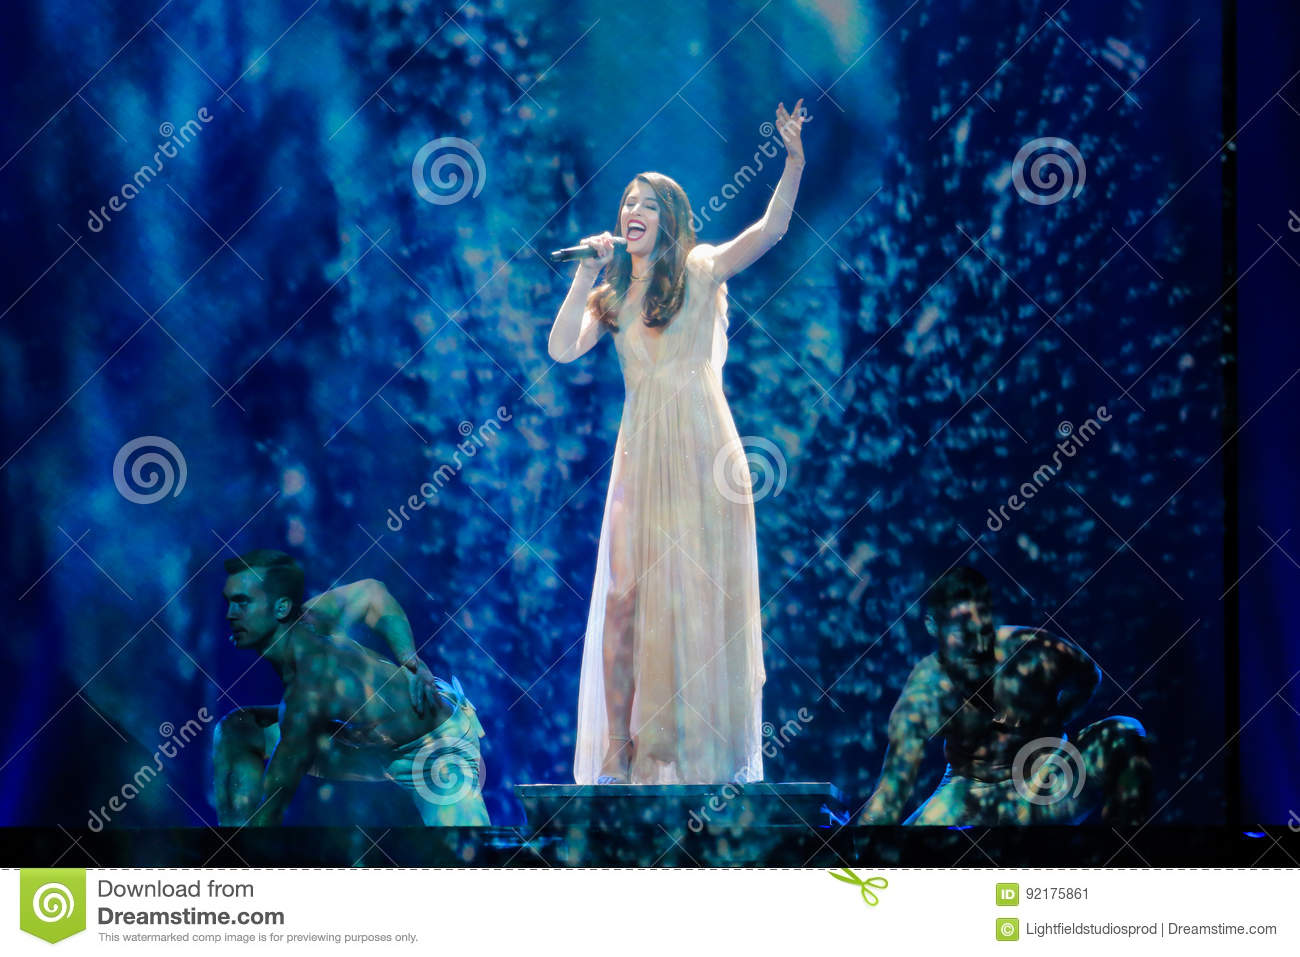 Artsvik from Armenia at the Eurovision Song Contest